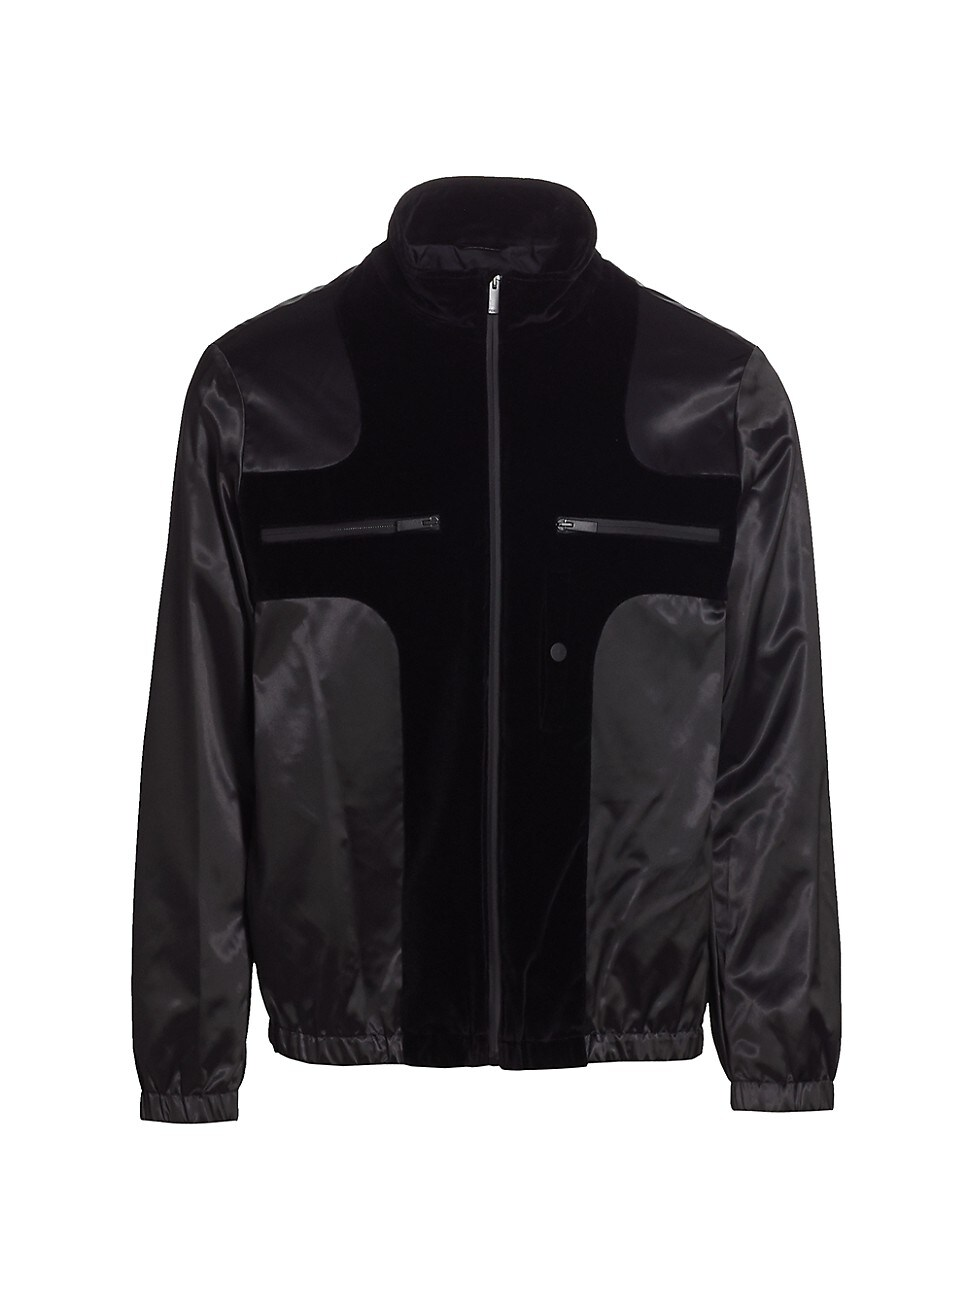 Fendi MEN'S WEIGHT SATIN PUFFER JACKET